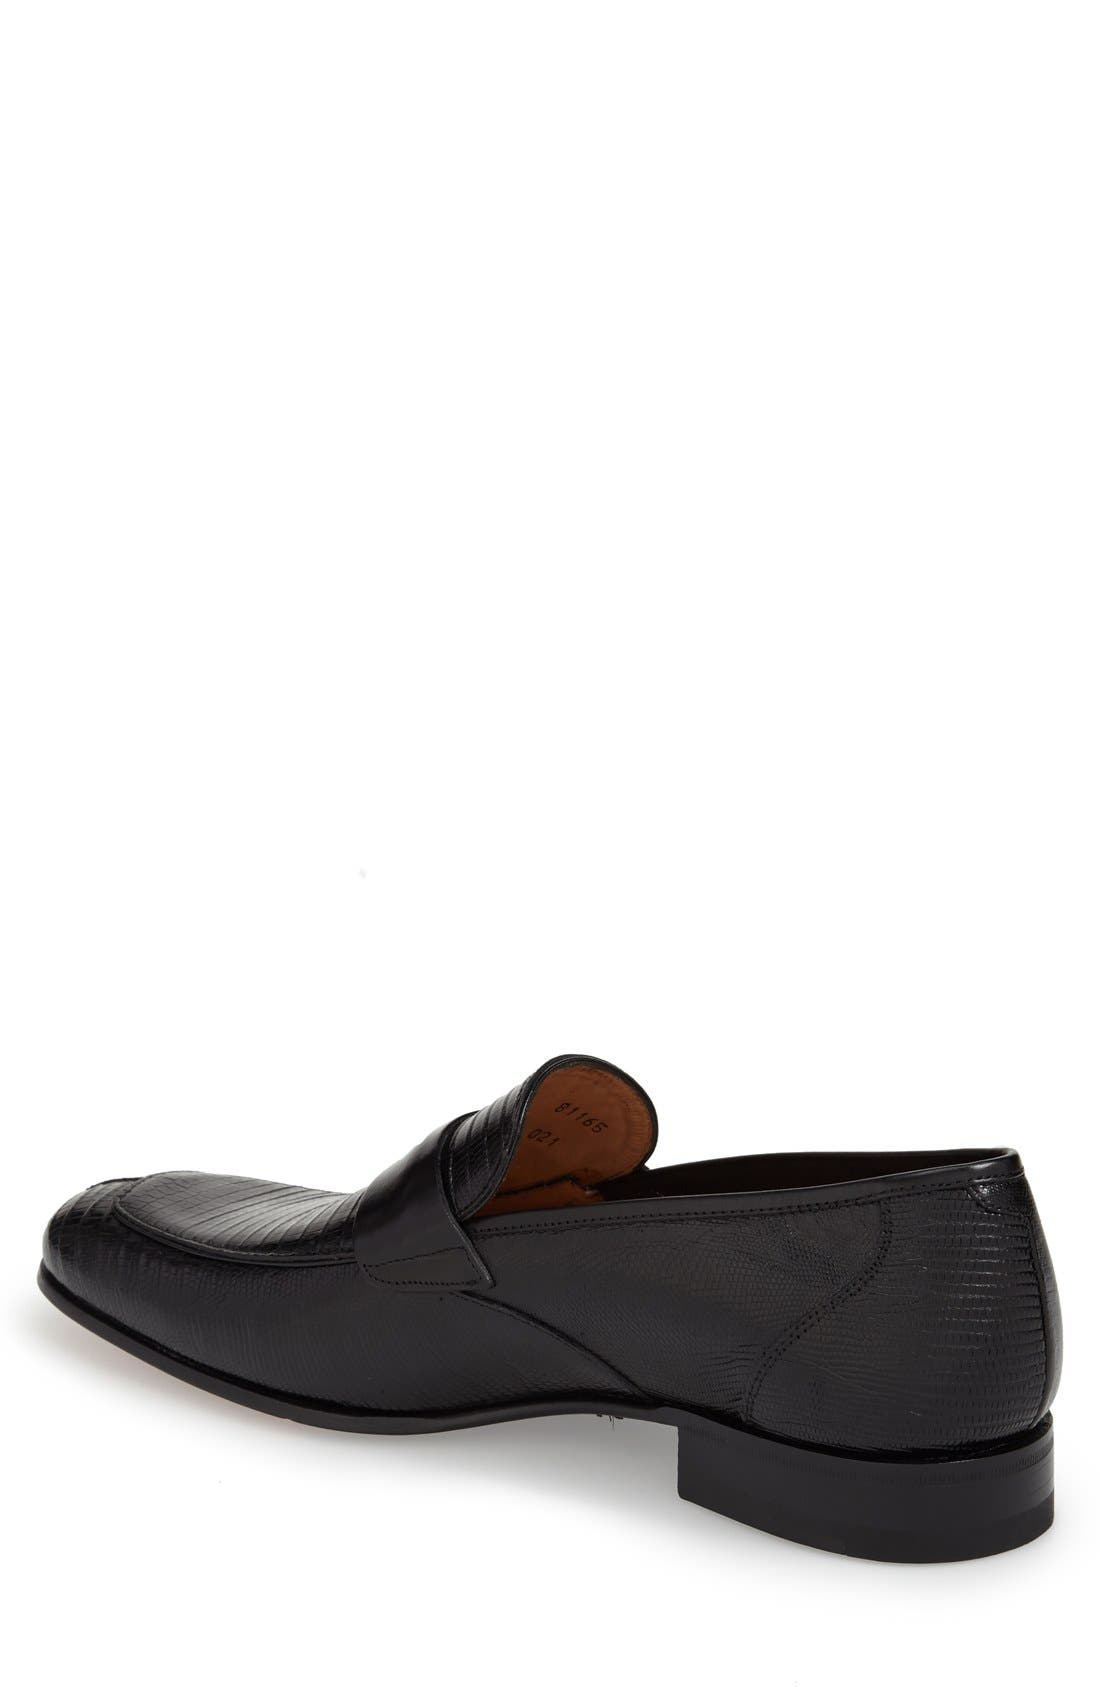 Alternate Image 2  - Mezlan 'Lipari' Lizard Leather Penny Loafer (Men)